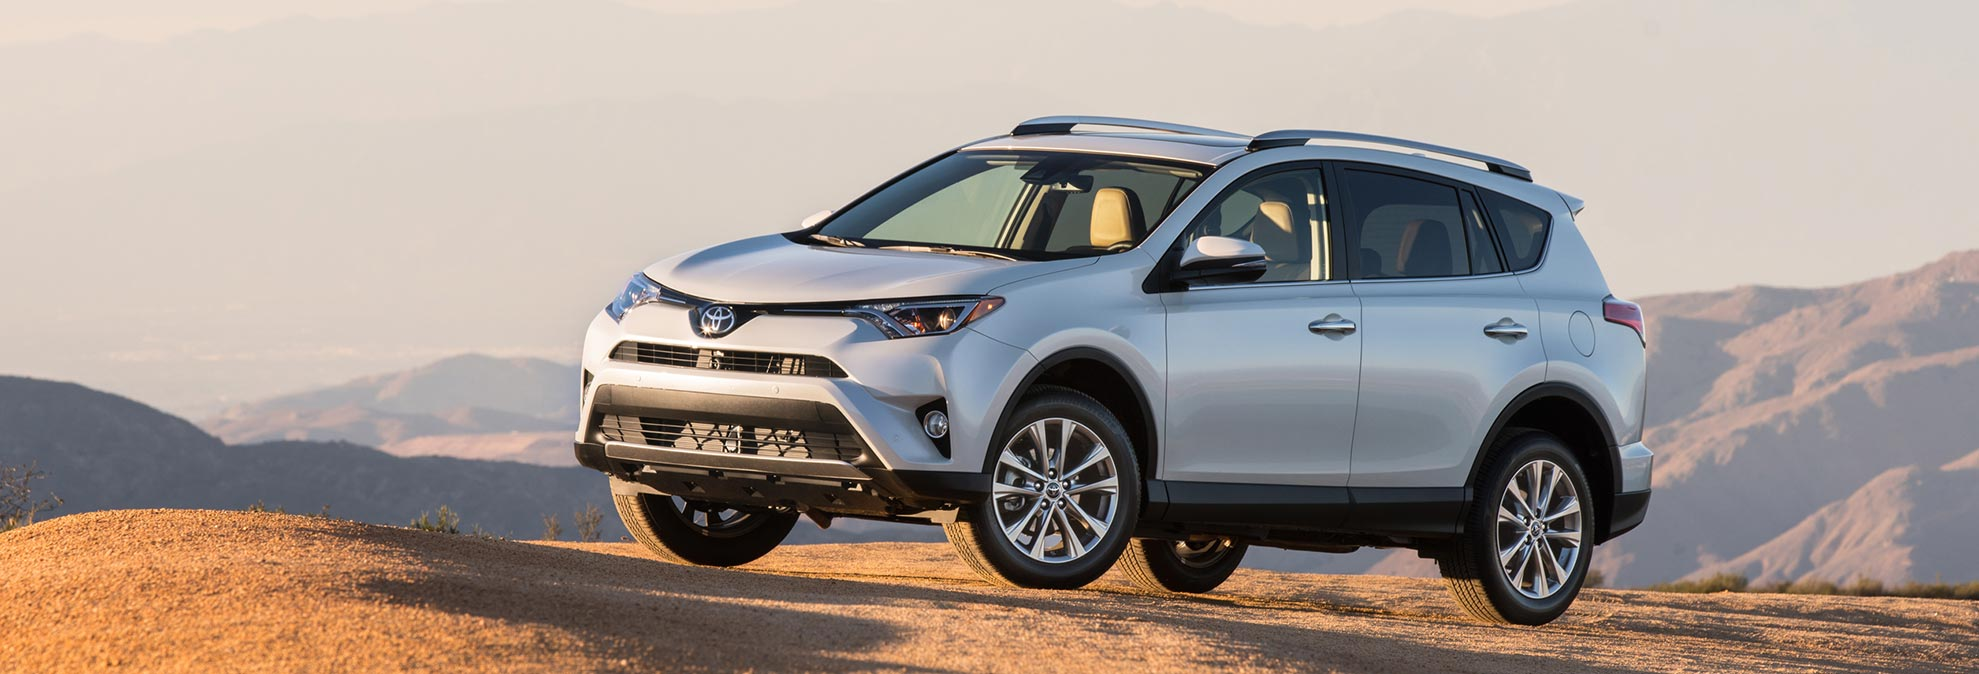 Honda cr v vs toyota rav4 which should you buy for Honda vs toyota reliability